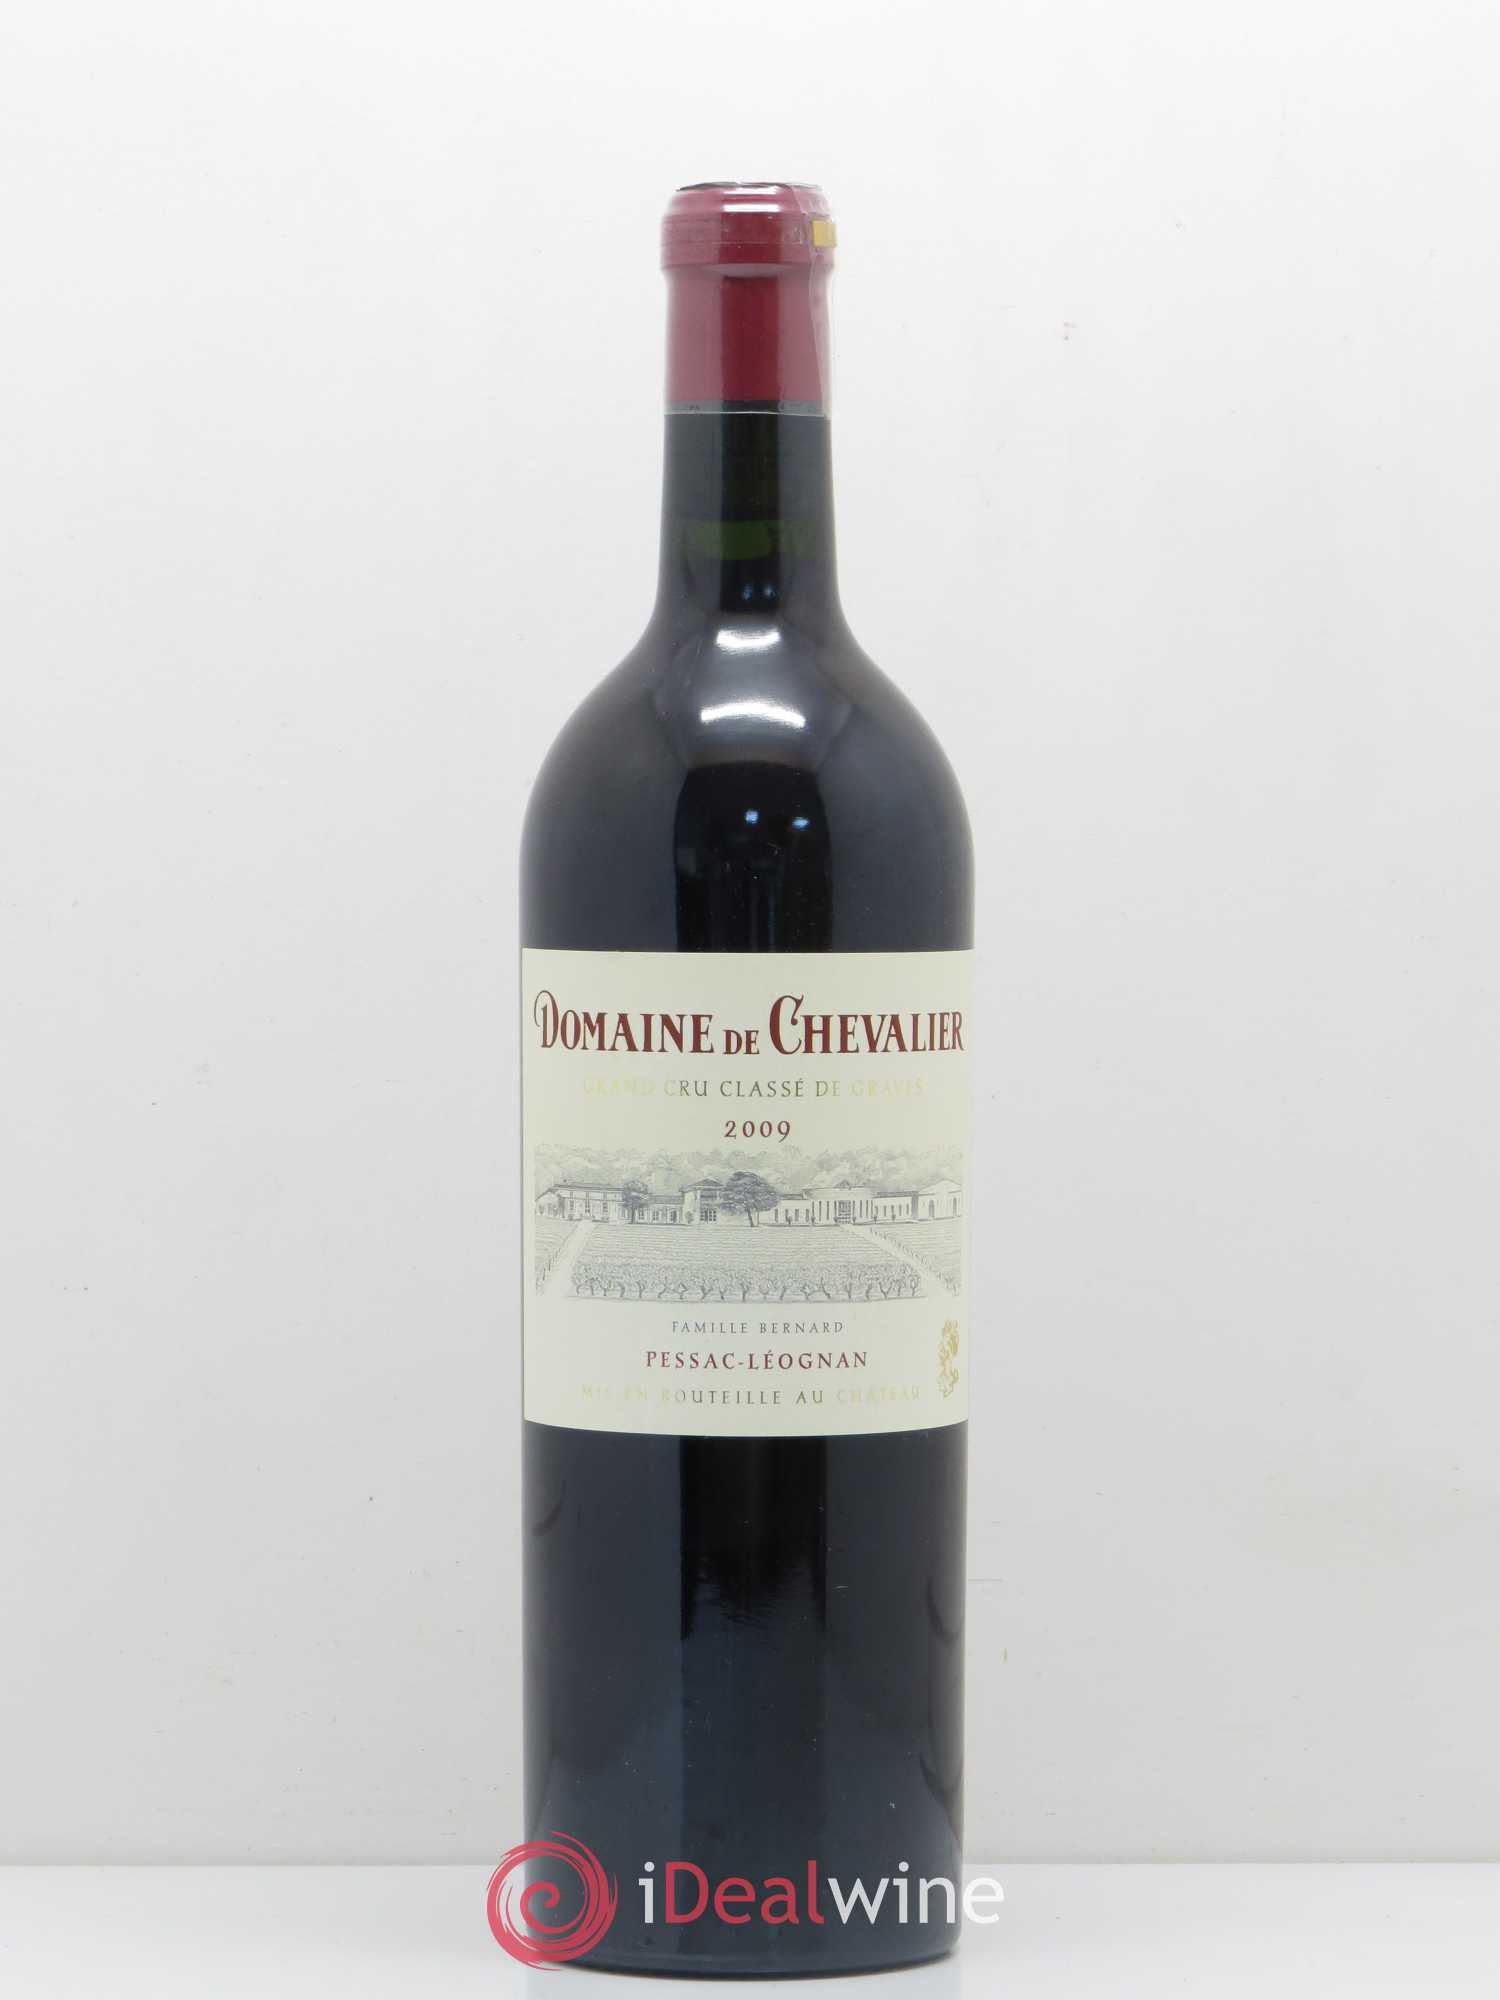 Domaine de Chevalier Cru Classé de Graves  2009 - Lot of 1 Bottle